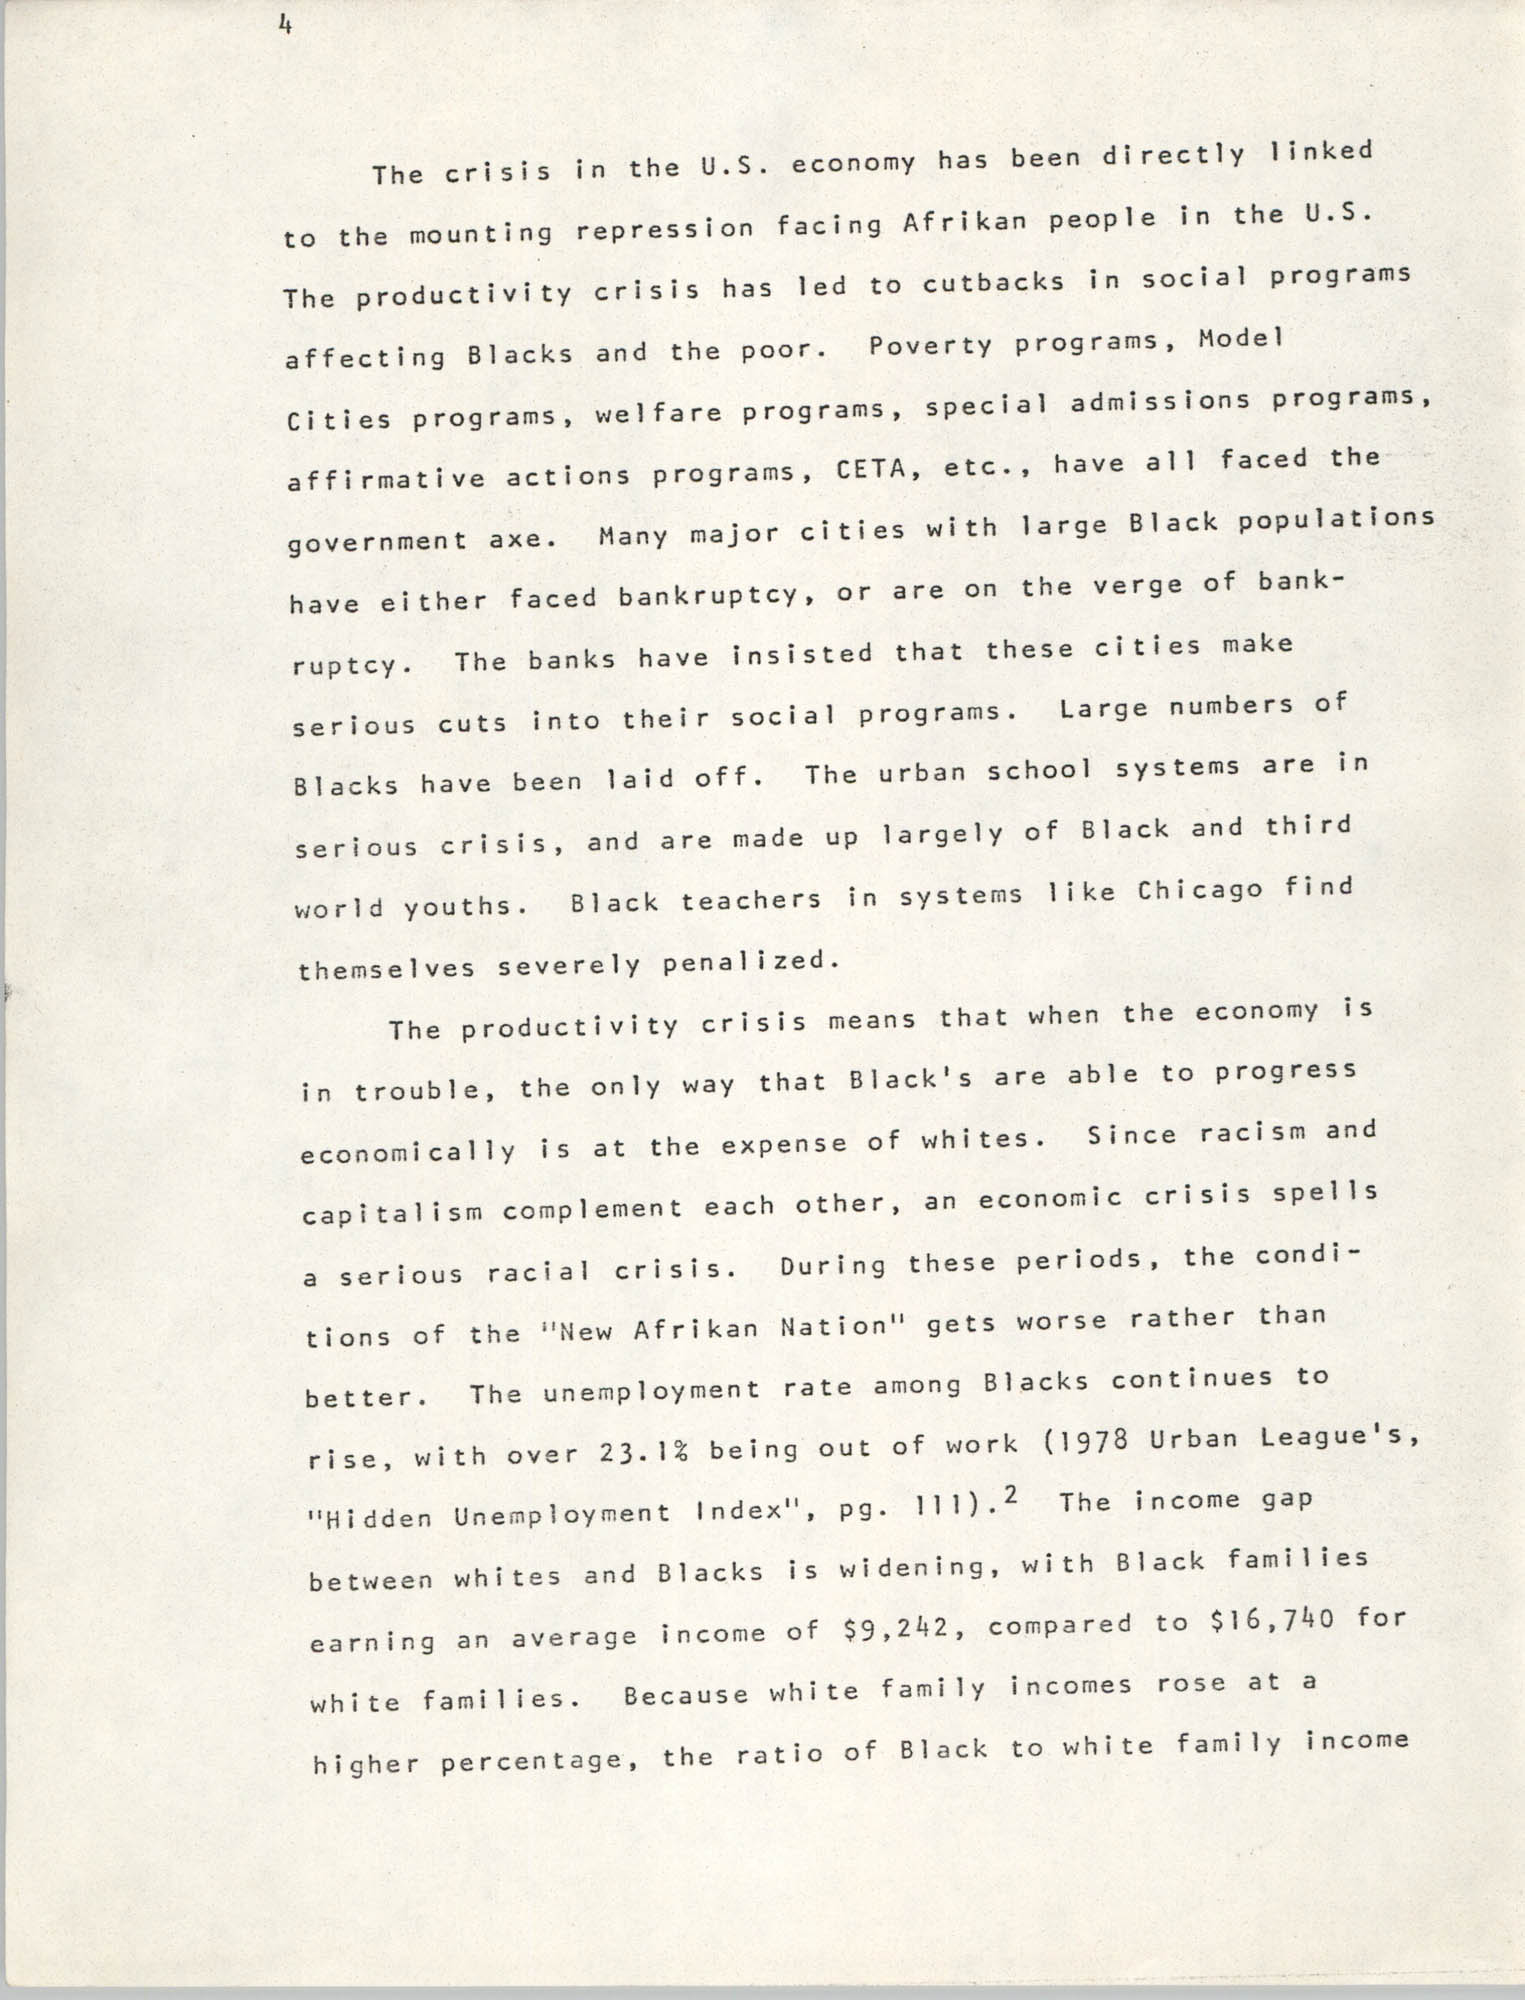 Pan-African Committee of the Black United Front, Page 4